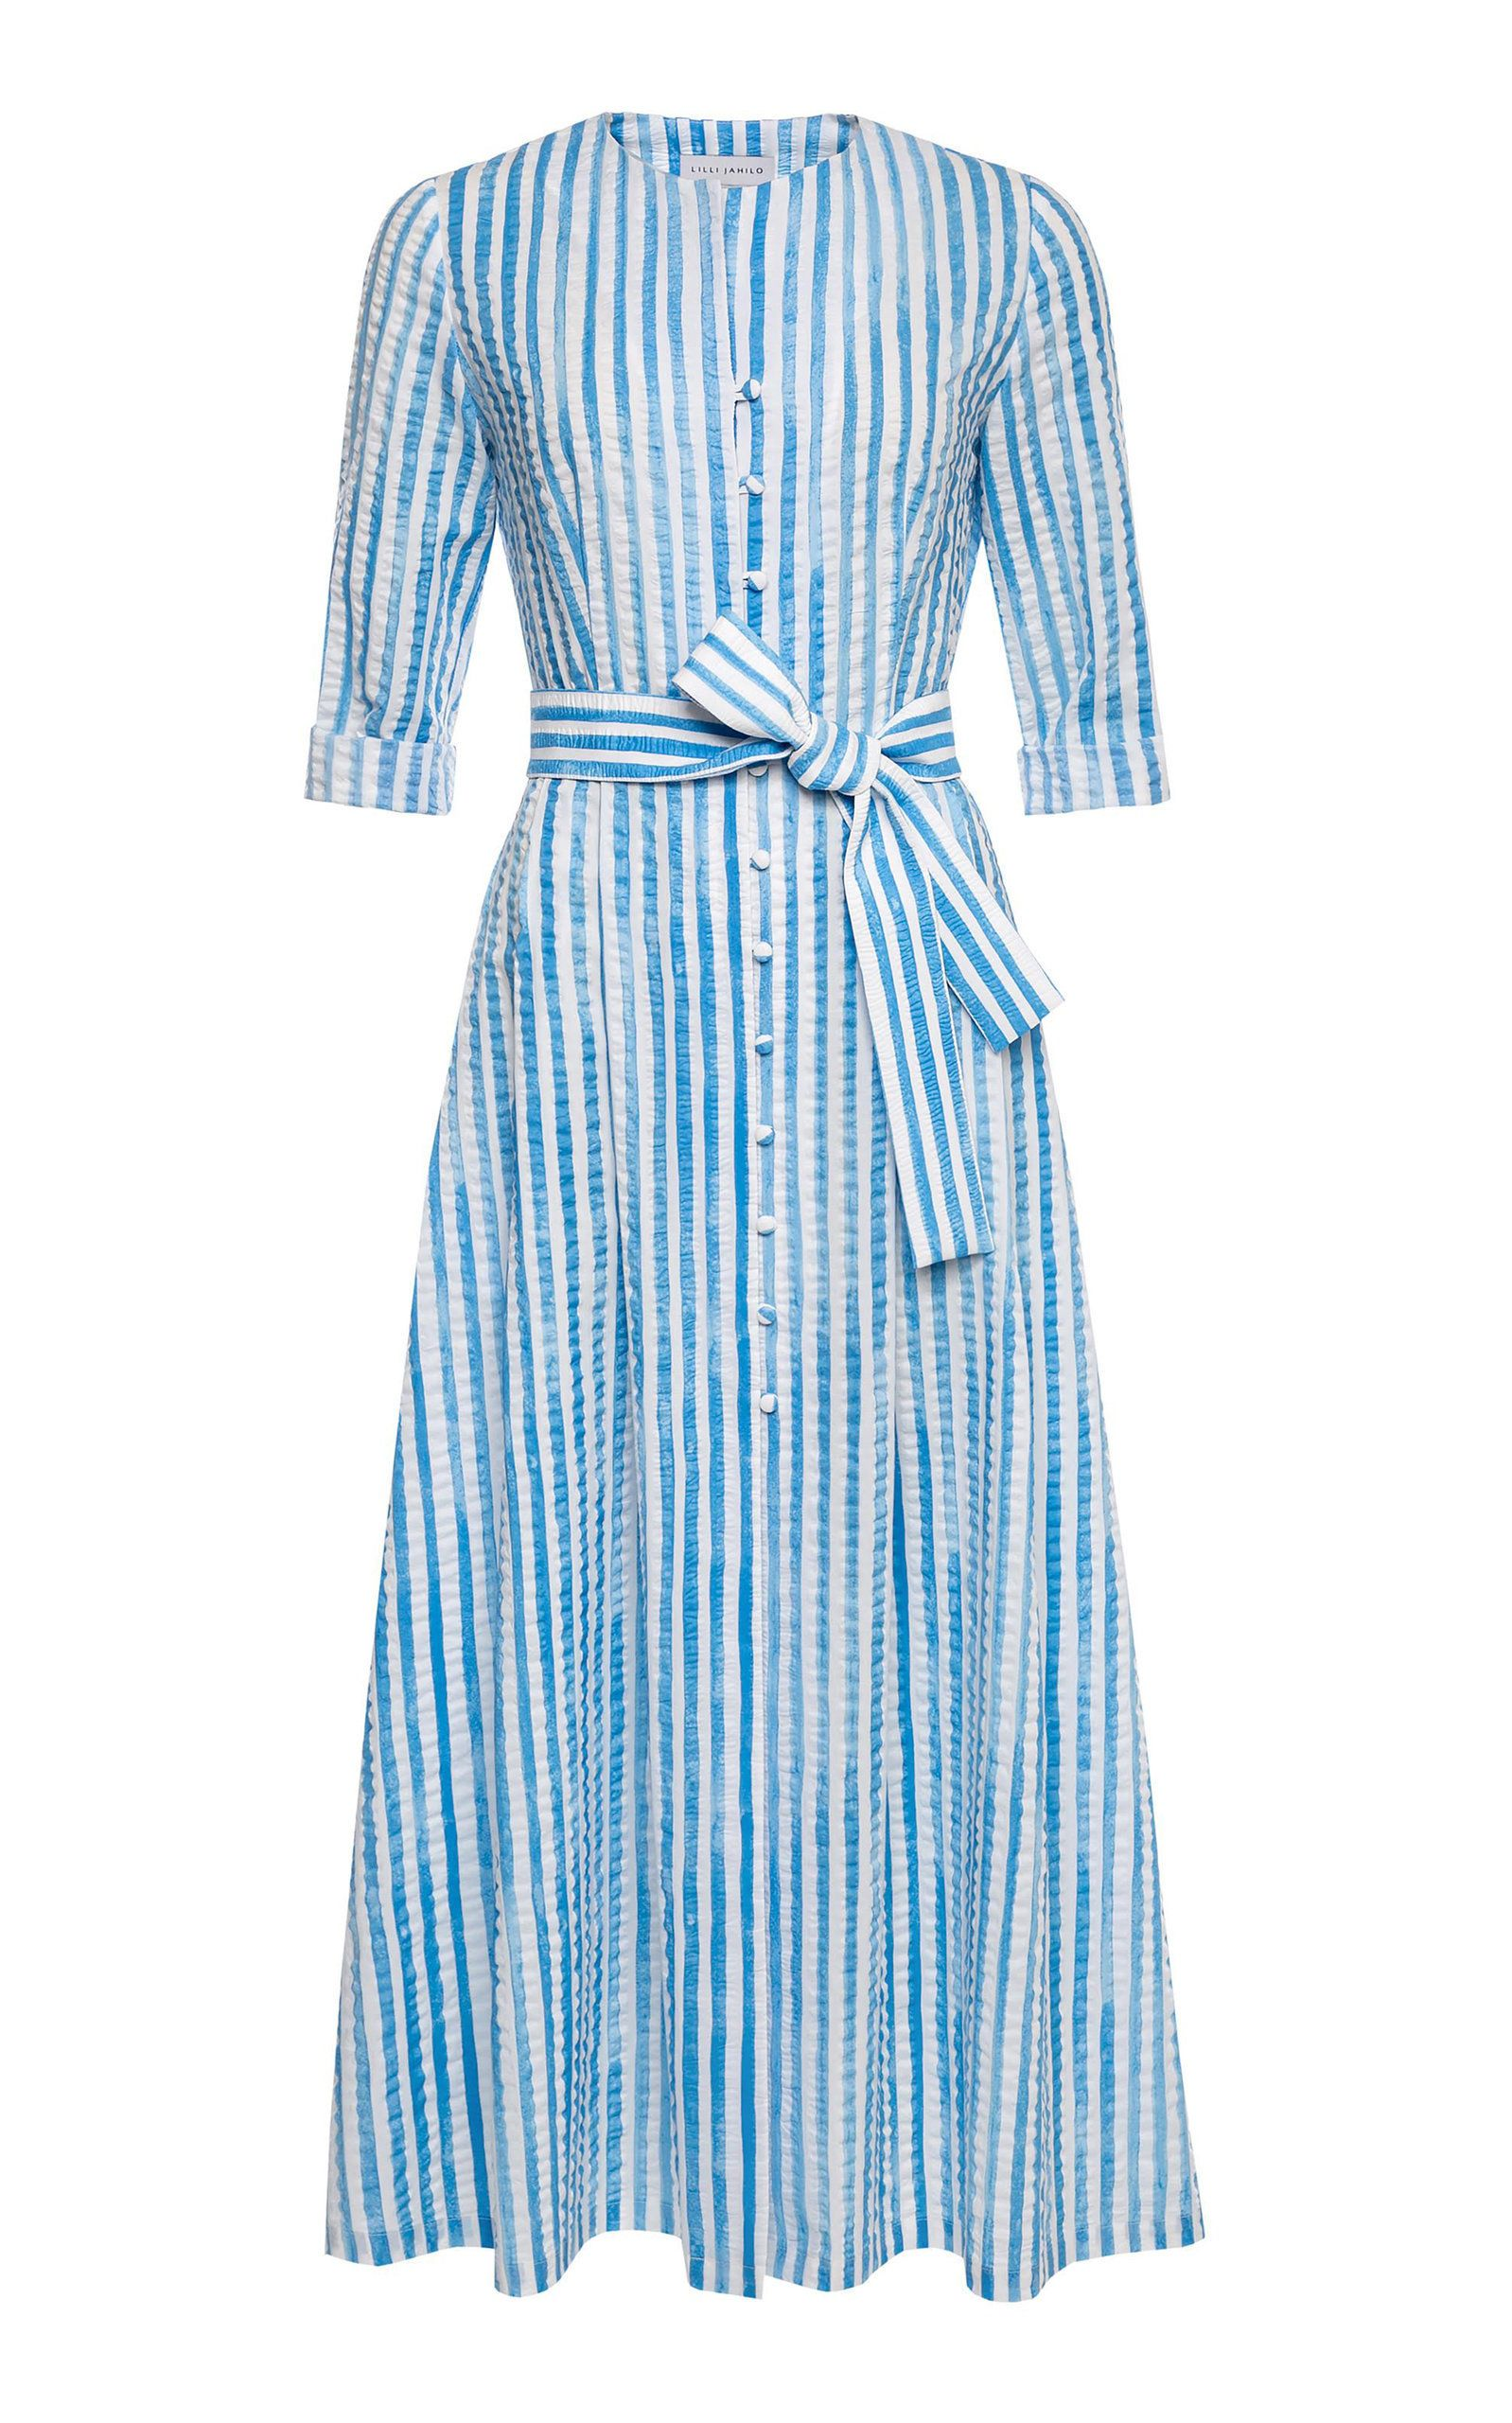 Knife Dress Pleats Cotton And Textiles Clothing Ellen Shoes With twH4qxf